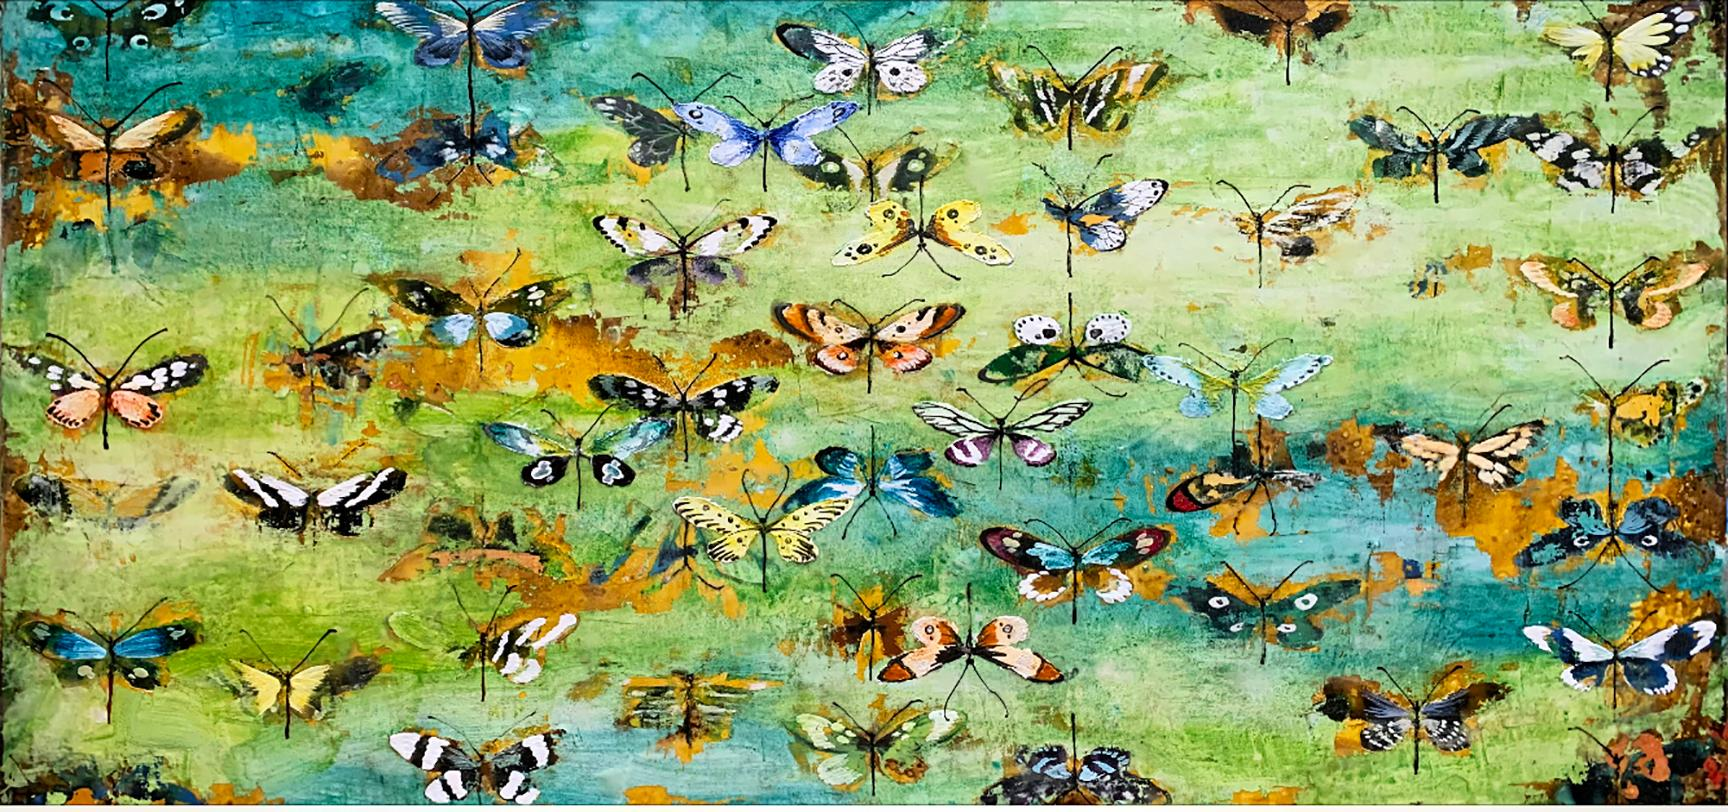 Generations, encaustic and mixed media painting, butterflies, turquoise, yellow